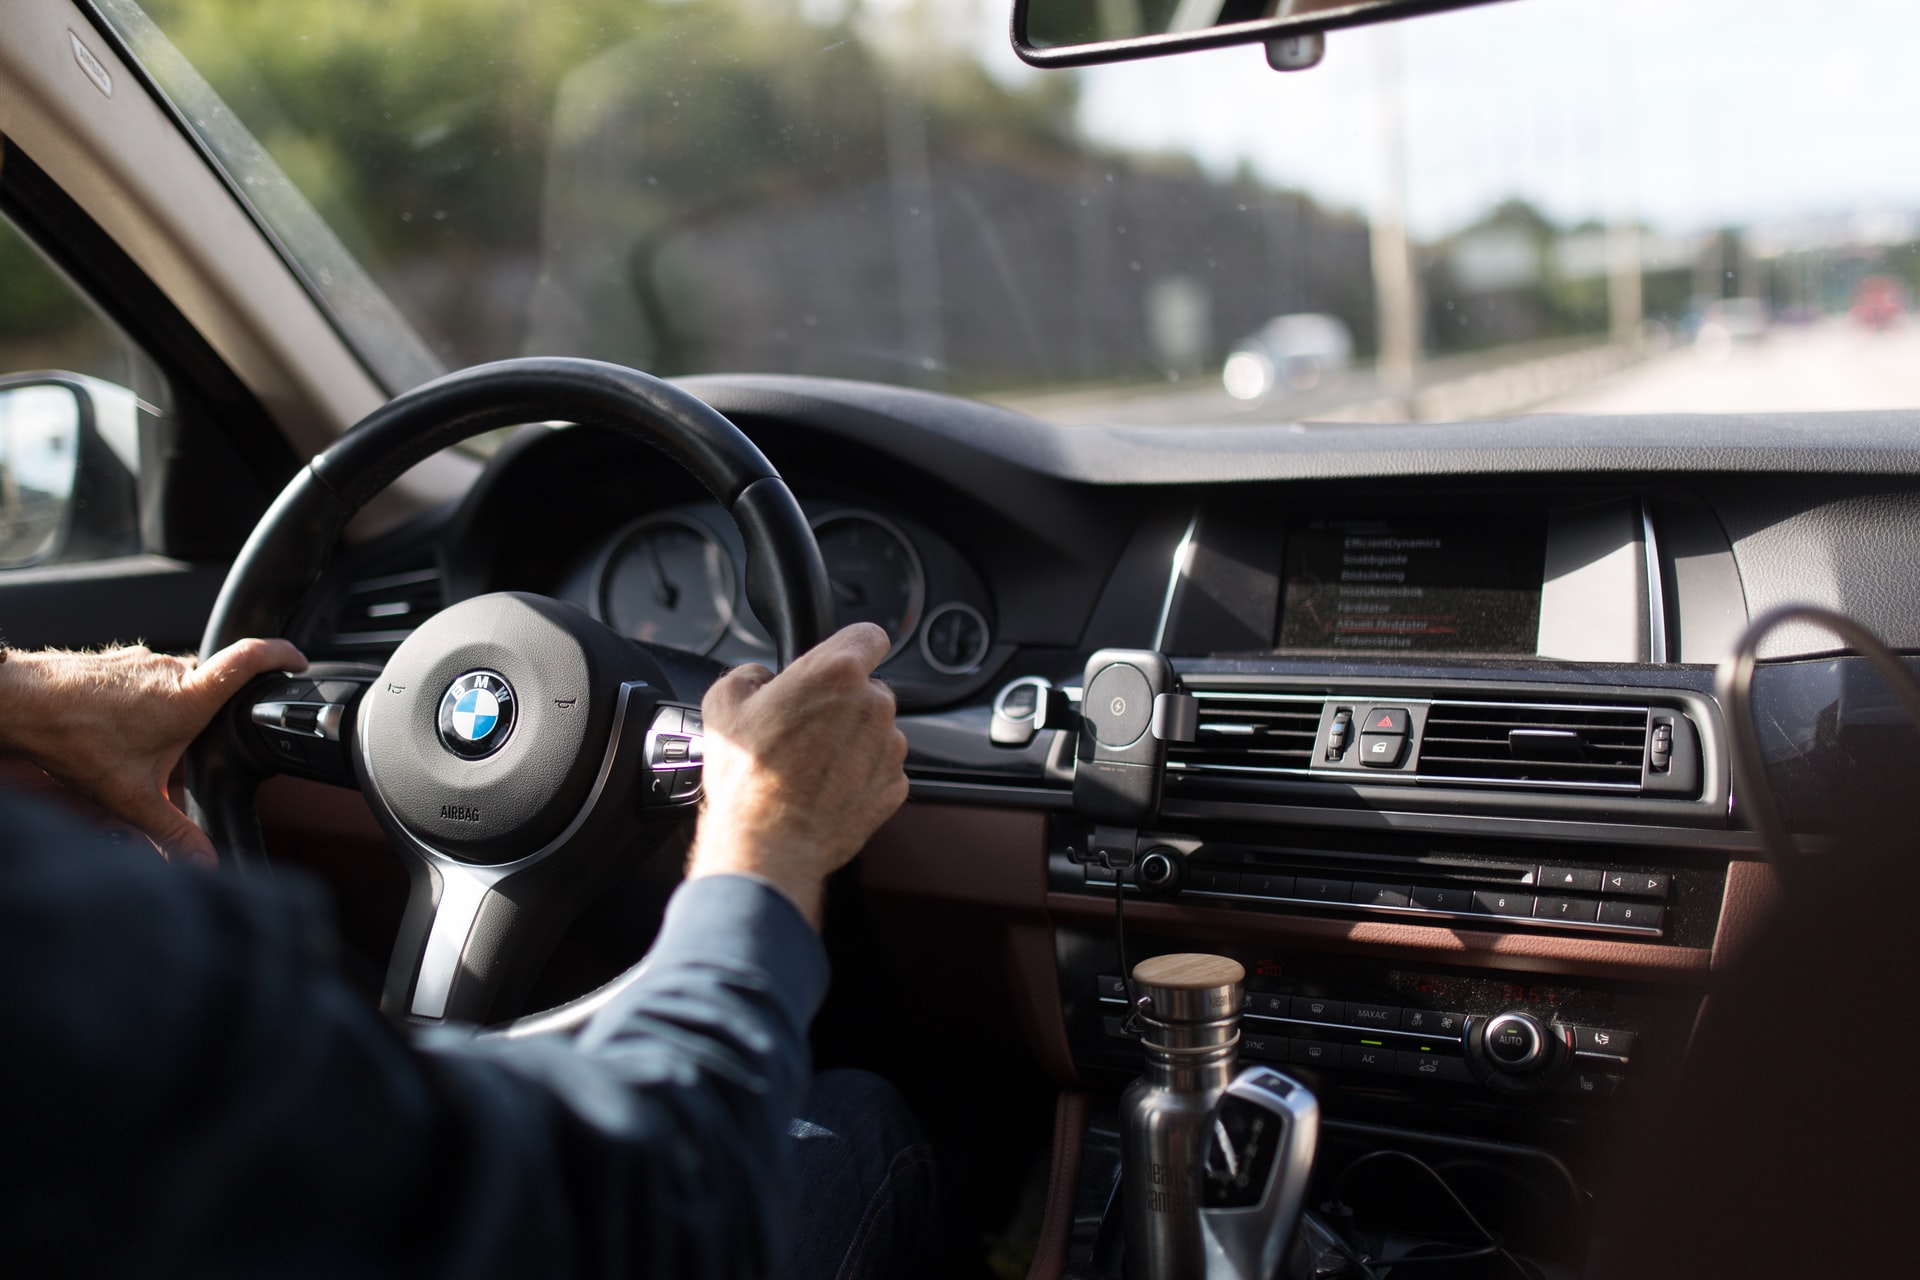 Where it is possible, a touch screen should be installed, but knobs, switches and buttons should still be used to simplify operation and to improve safety while driving.